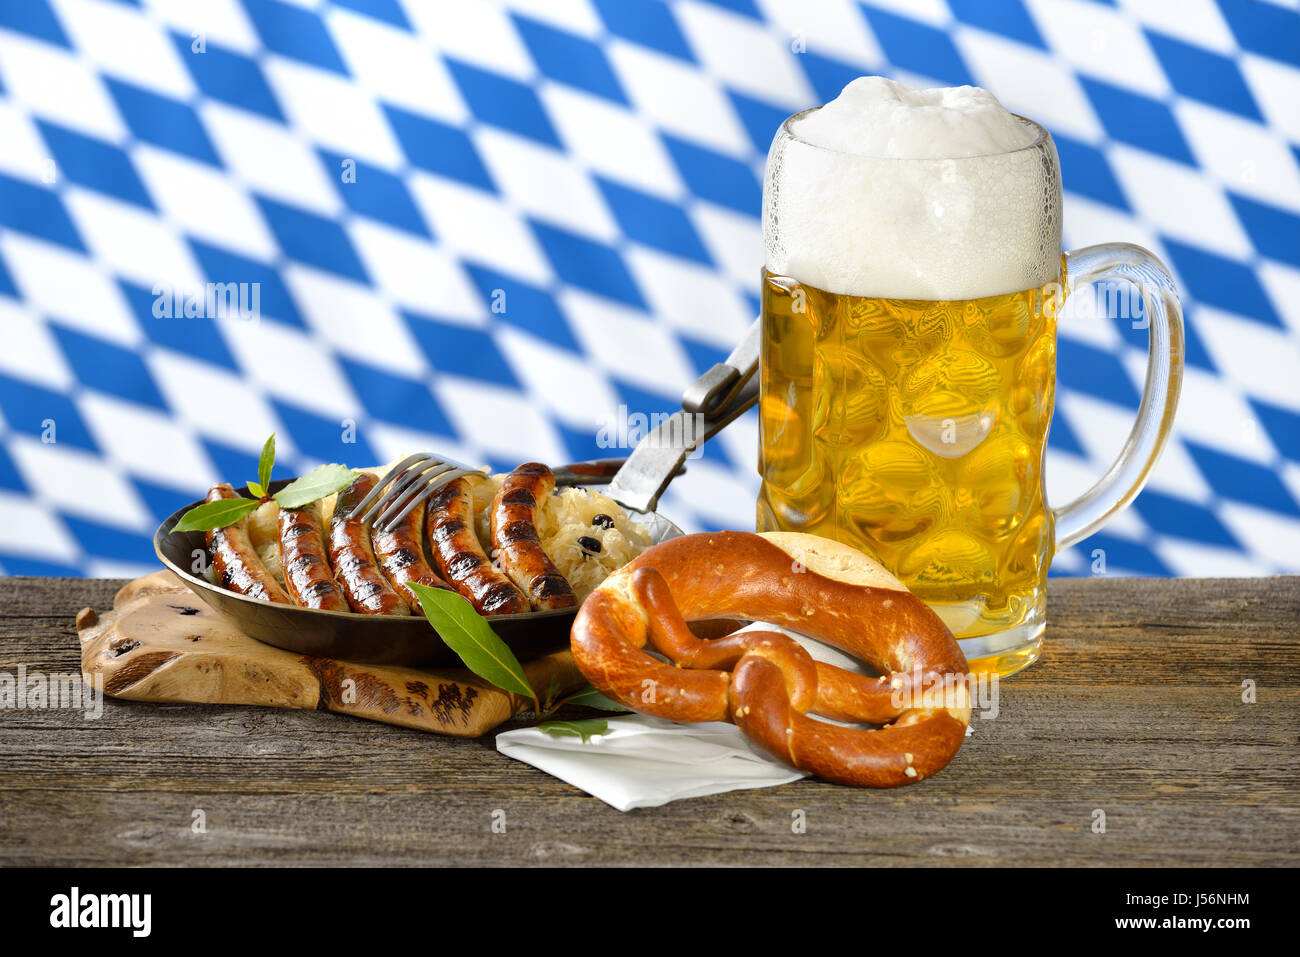 Fried Nuremberg sausages on sauerkraut with a mug of Bavarian beer and a pretzel Stock Photo